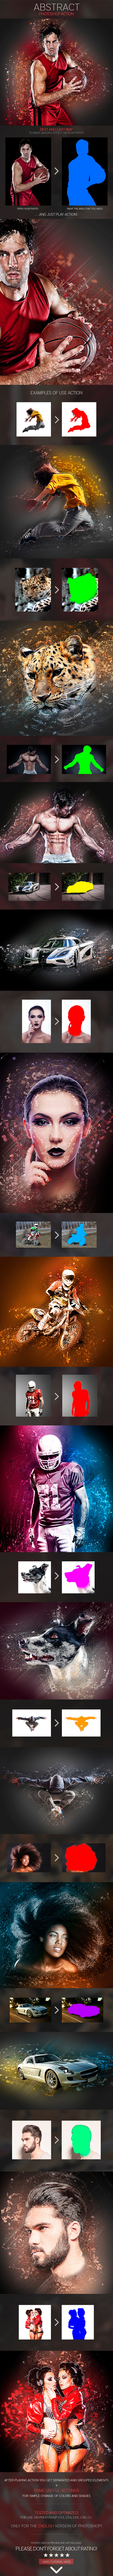 Abstract Photoshop Action - Photo Effects Actions